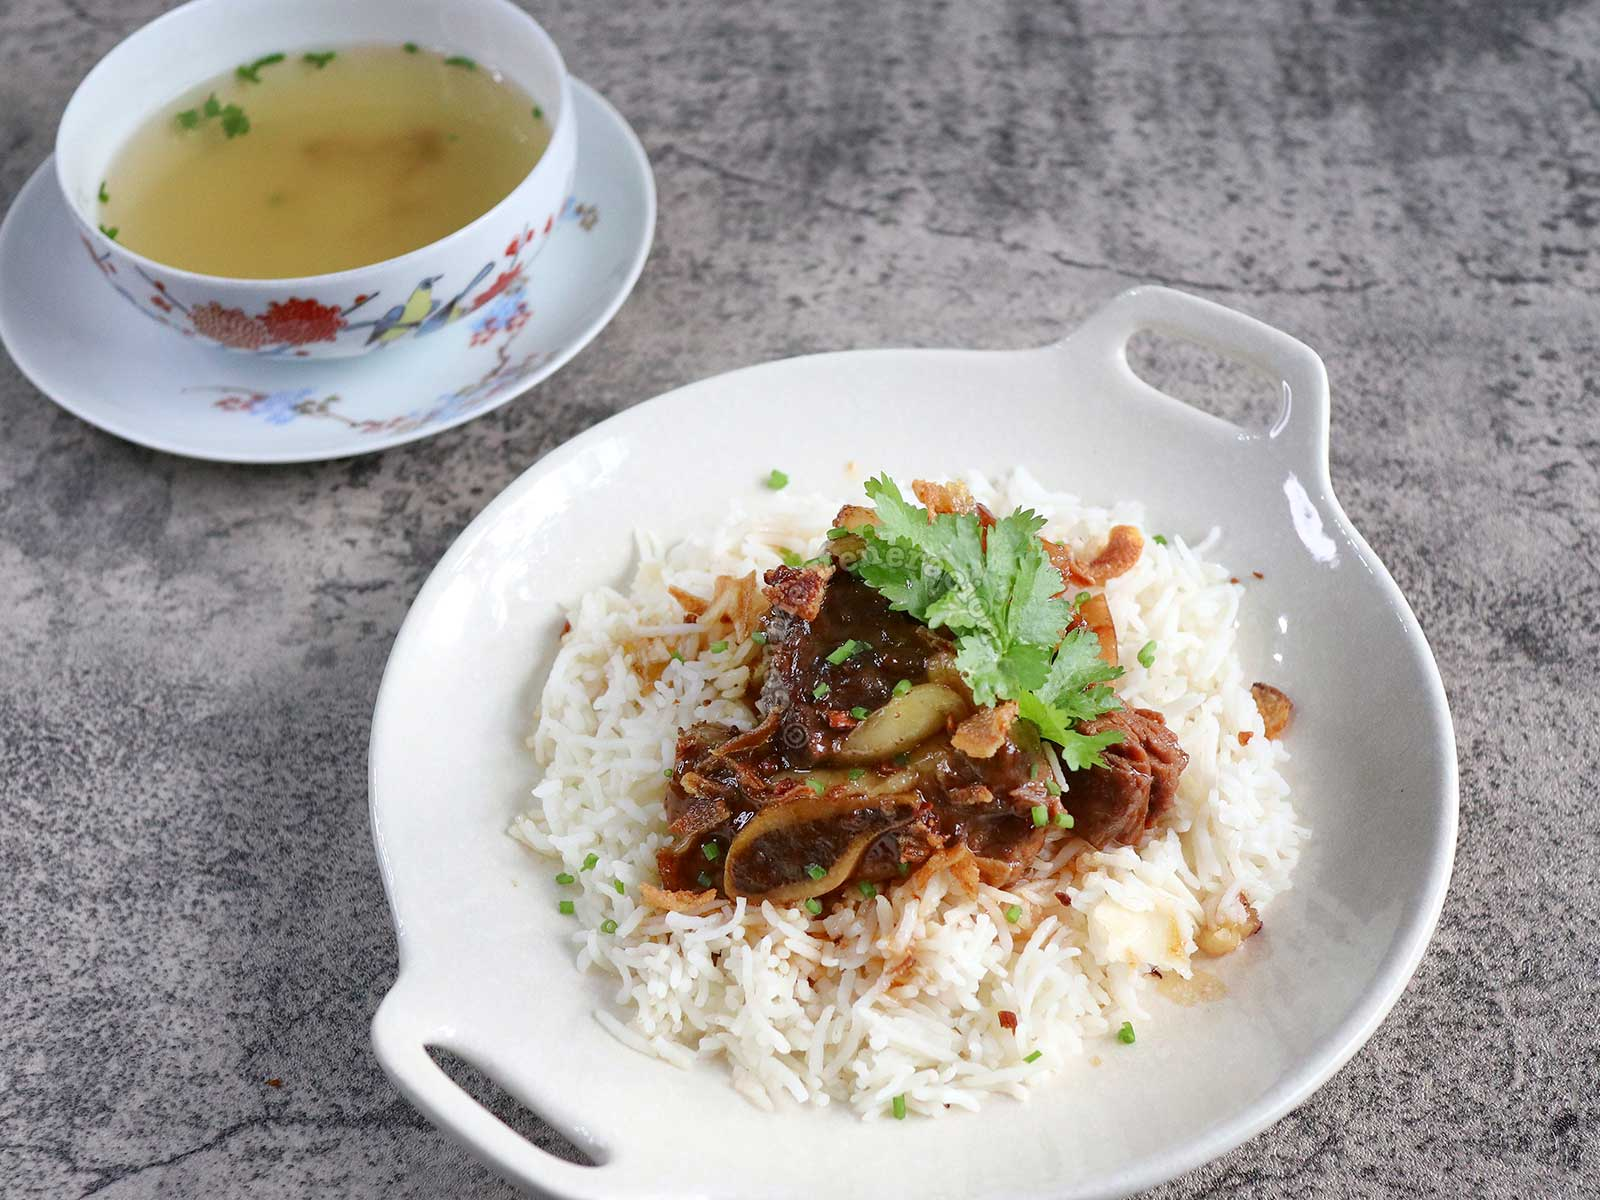 Beef Pares with Broth on the Side